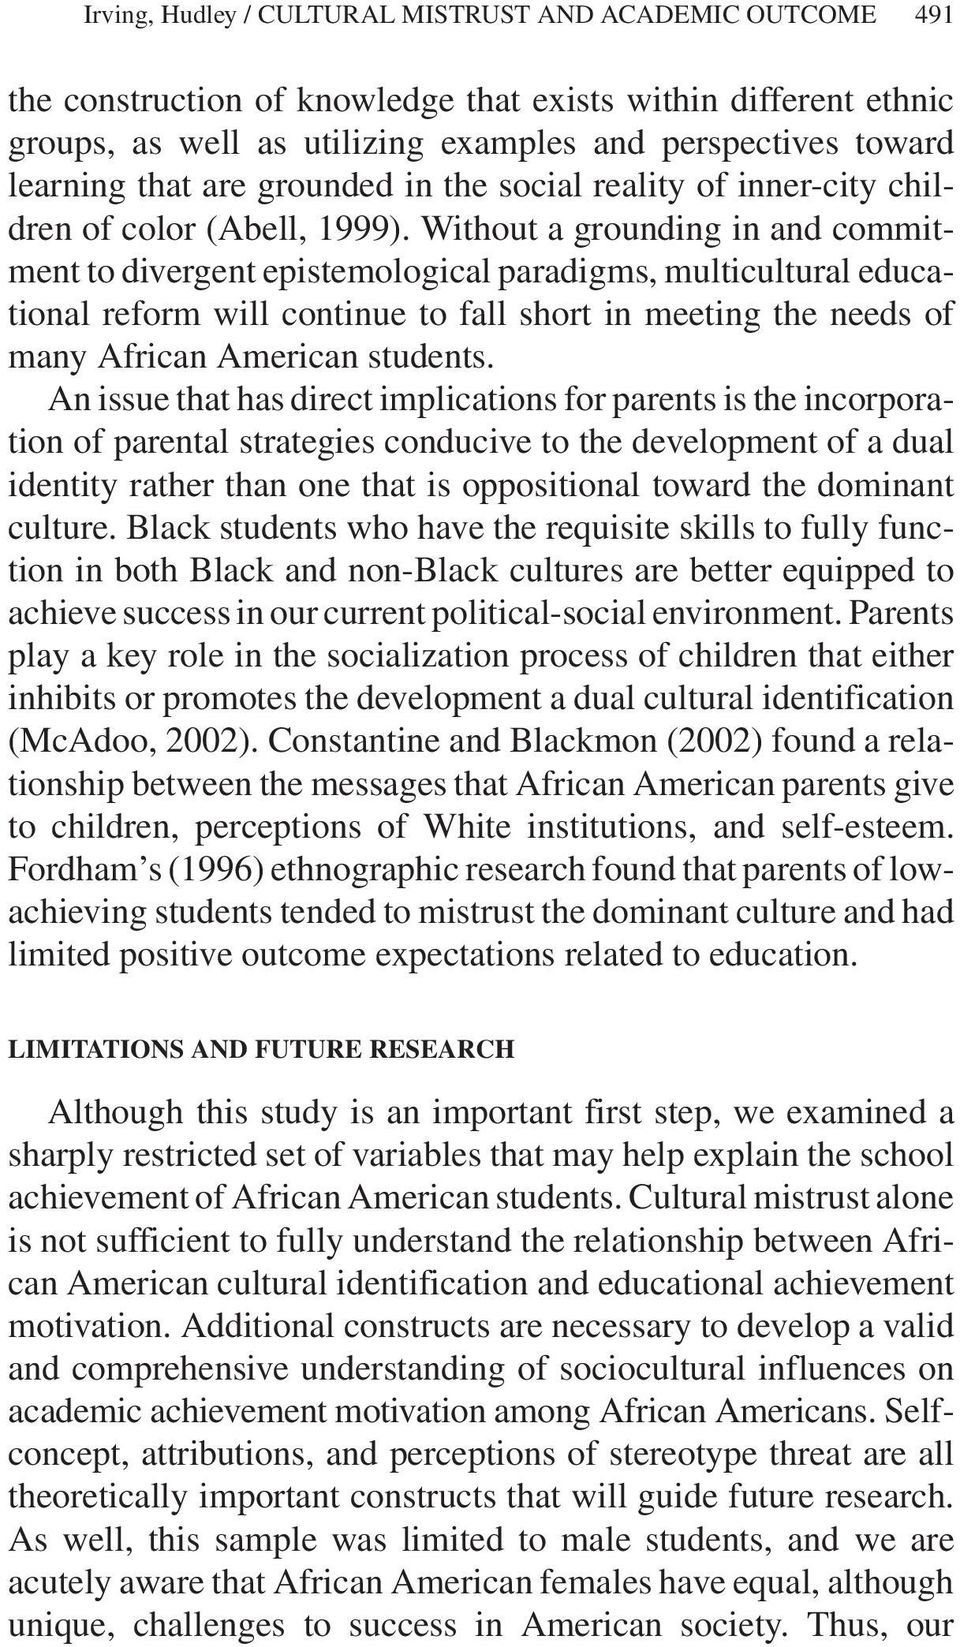 Without a grounding in and commitment to divergent epistemological paradigms, multicultural educational reform will continue to fall short in meeting the needs of many African American students.